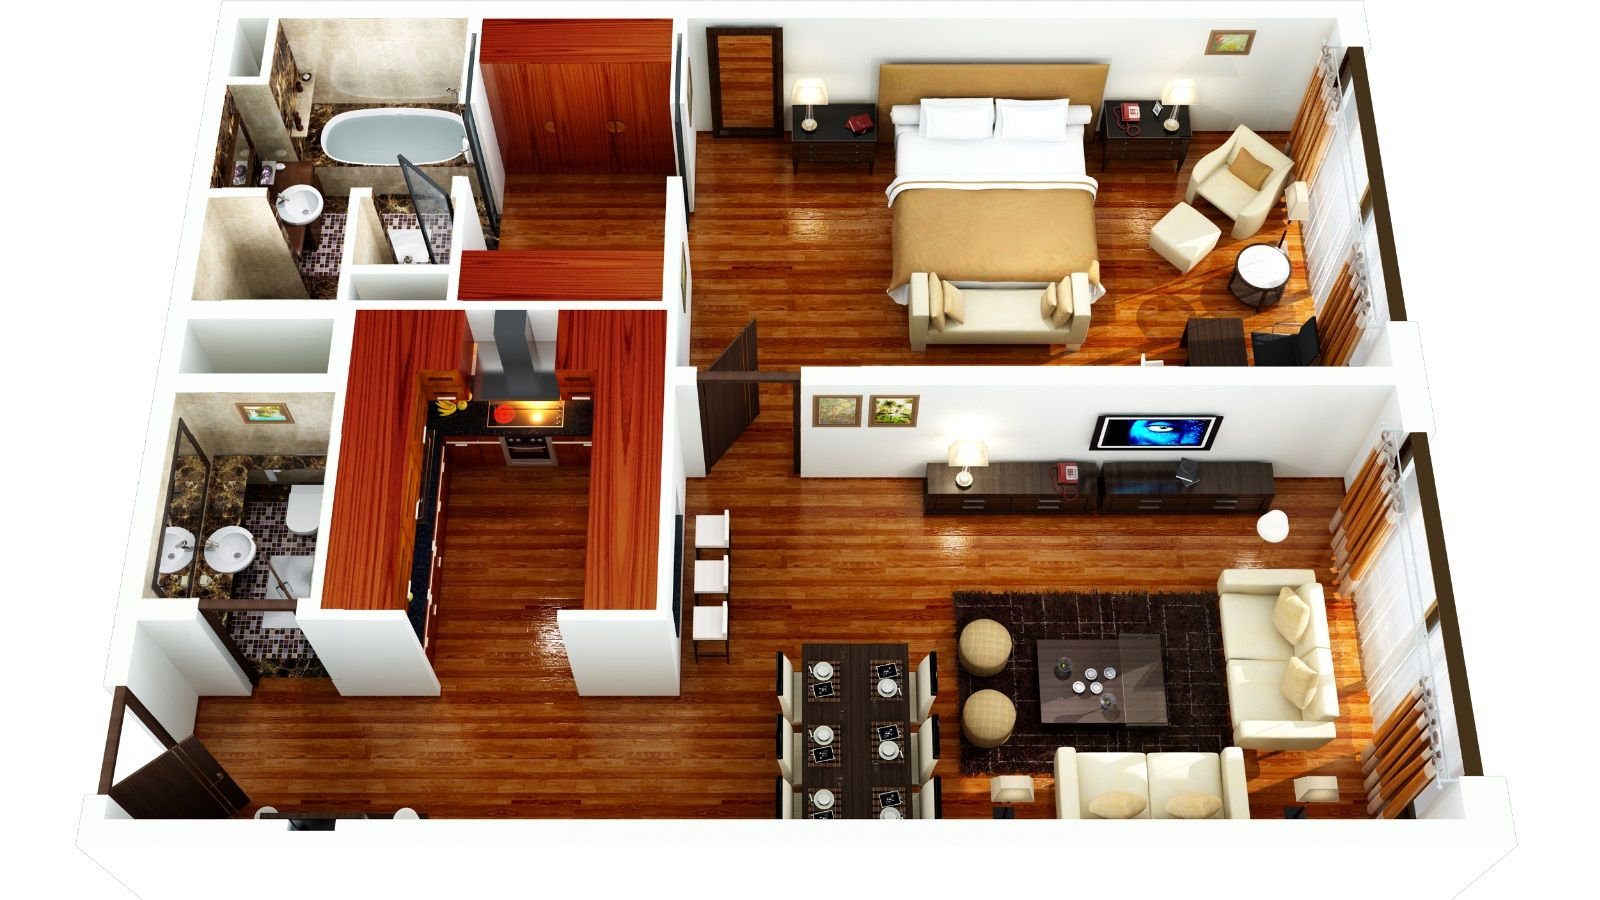 Image result for executive style 2 bedroom apartments